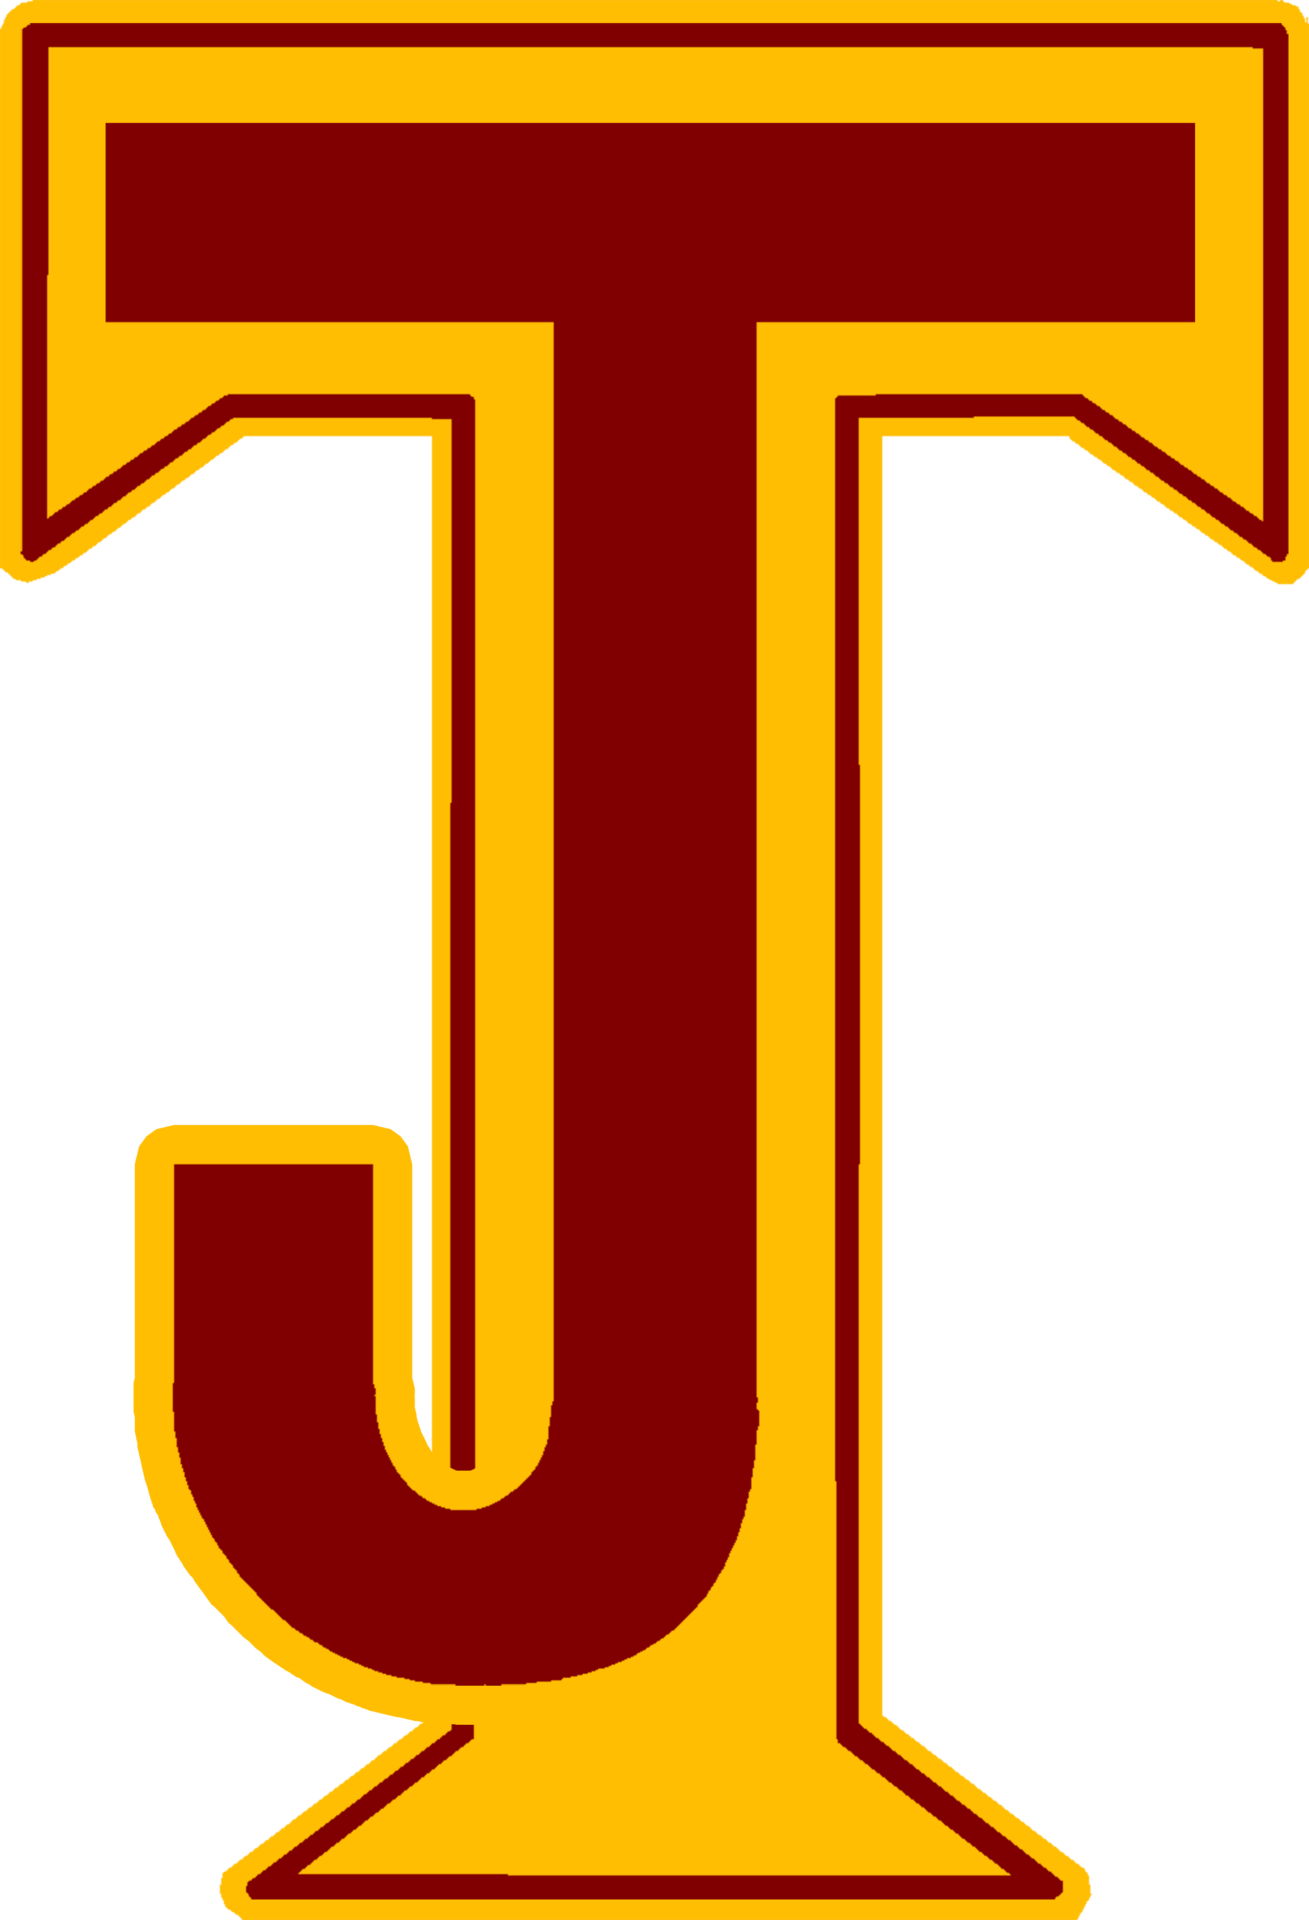 TJCA athletic logo